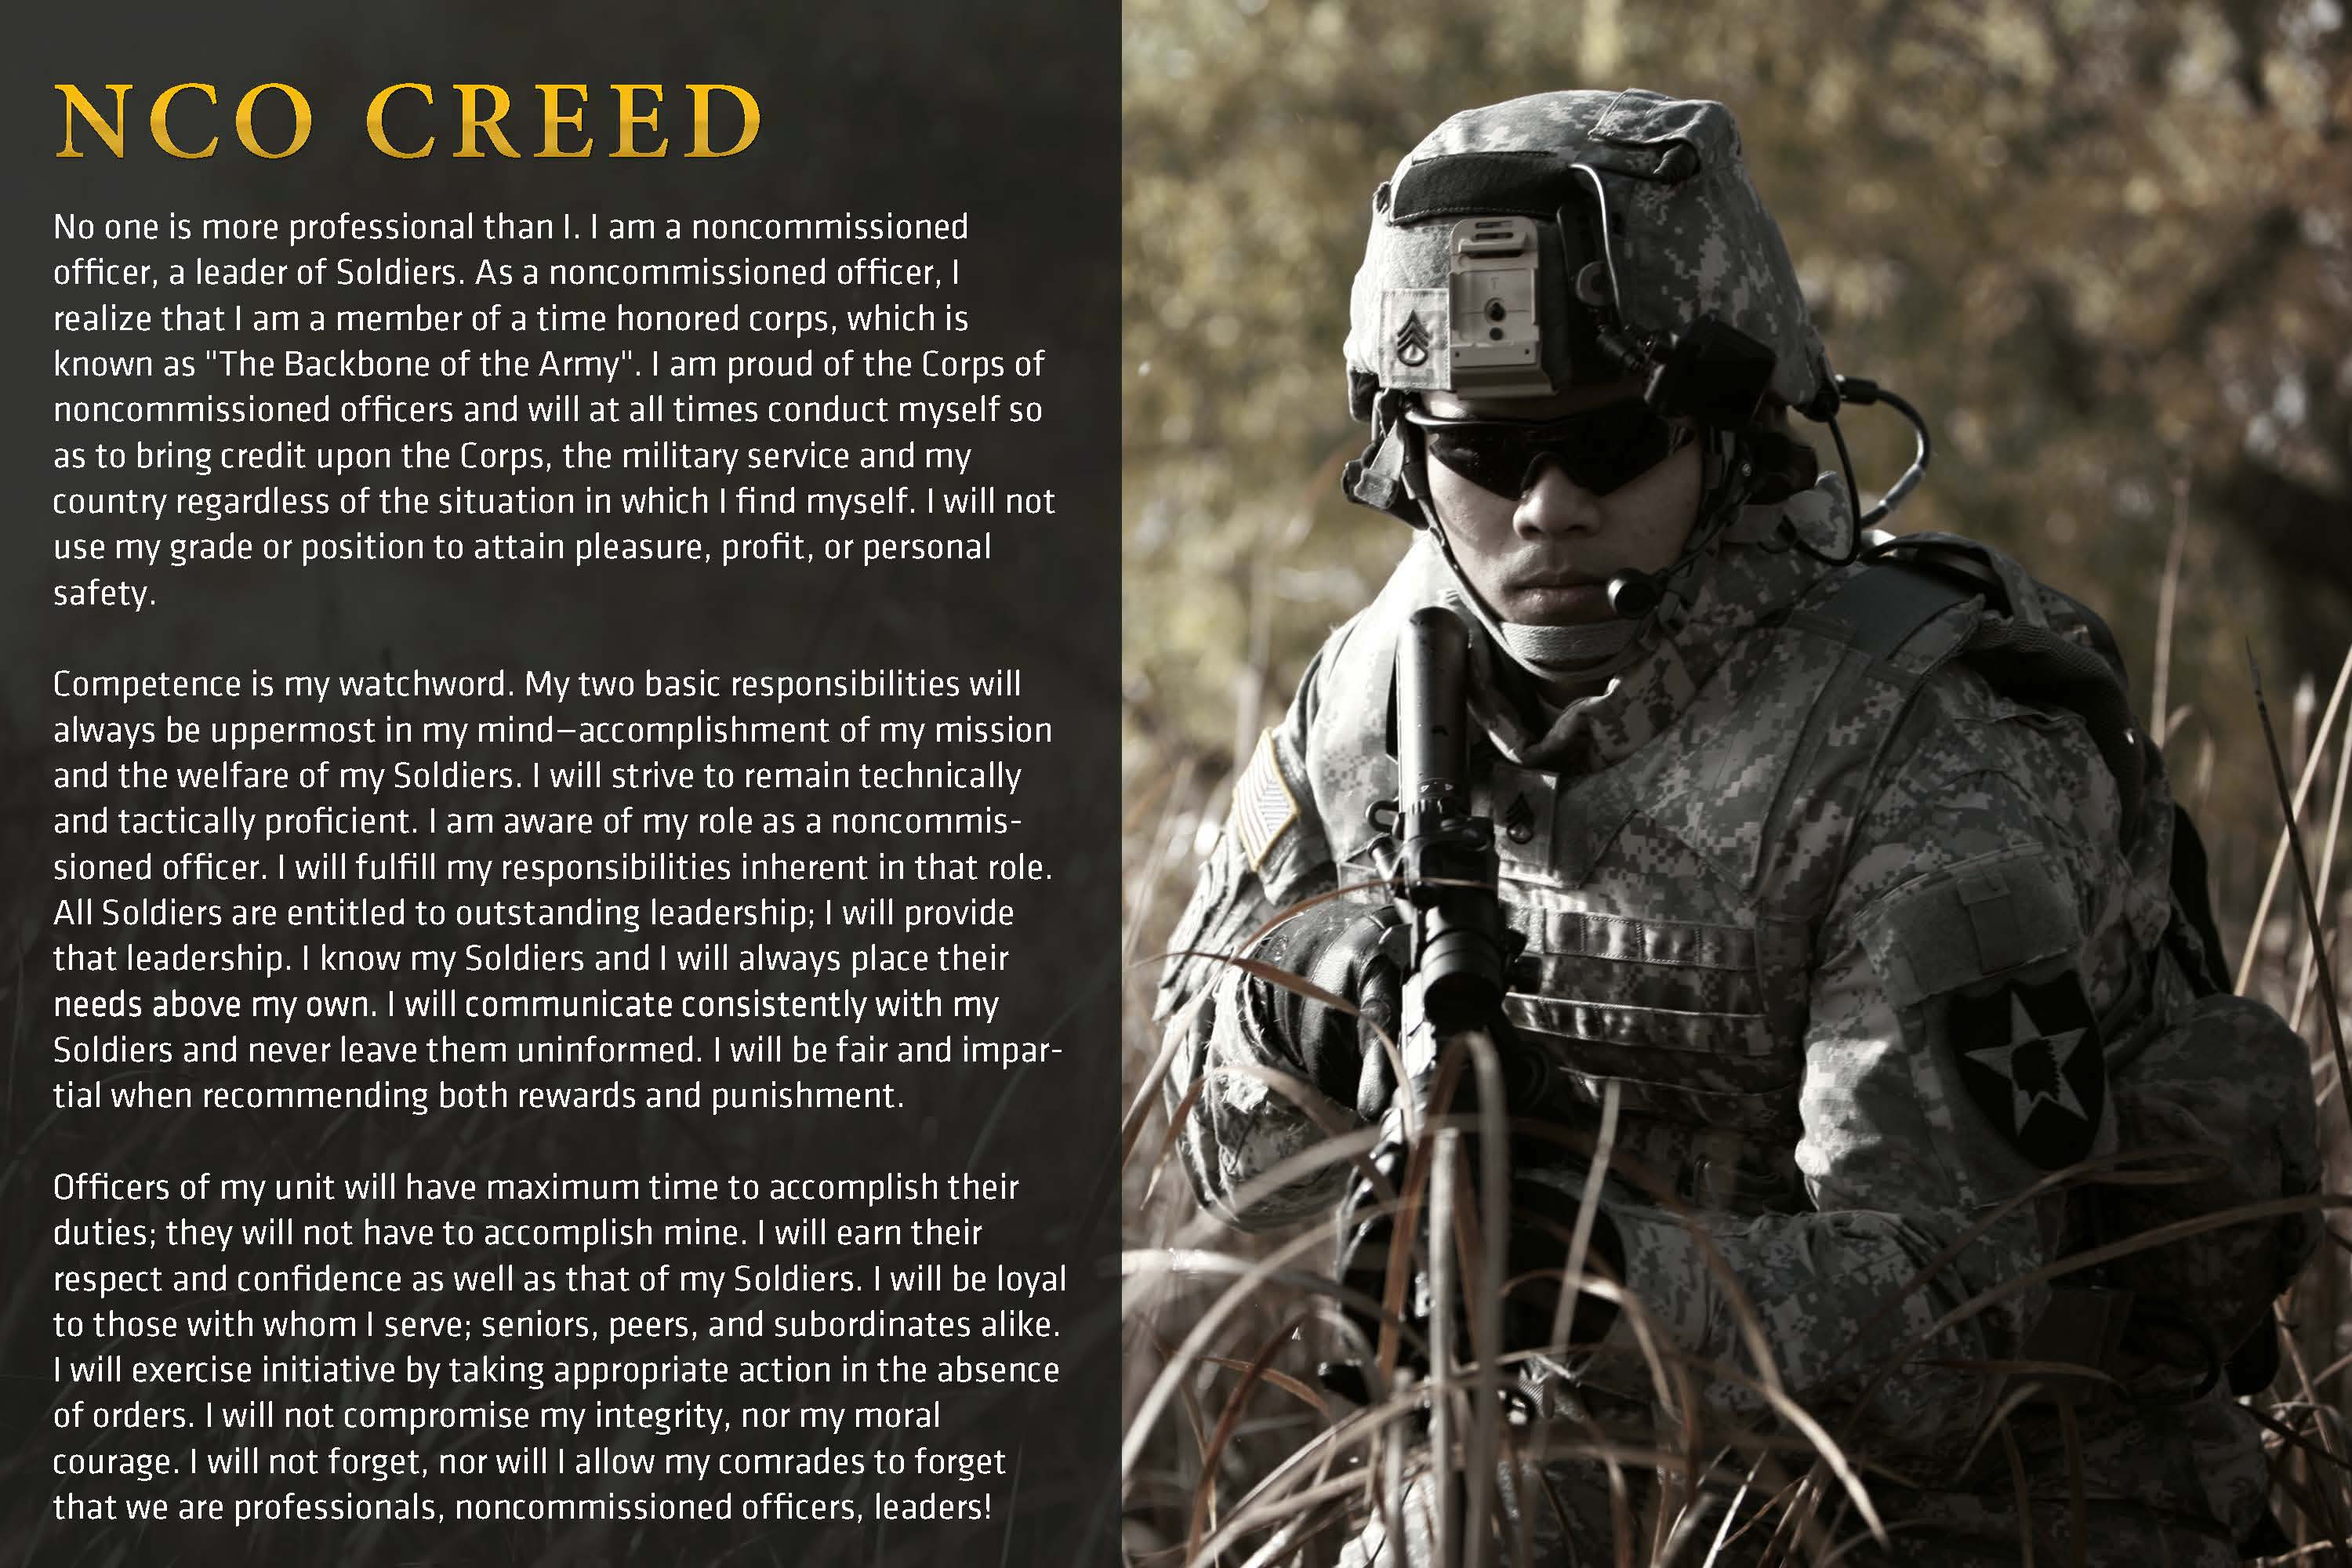 Soldier's Creed